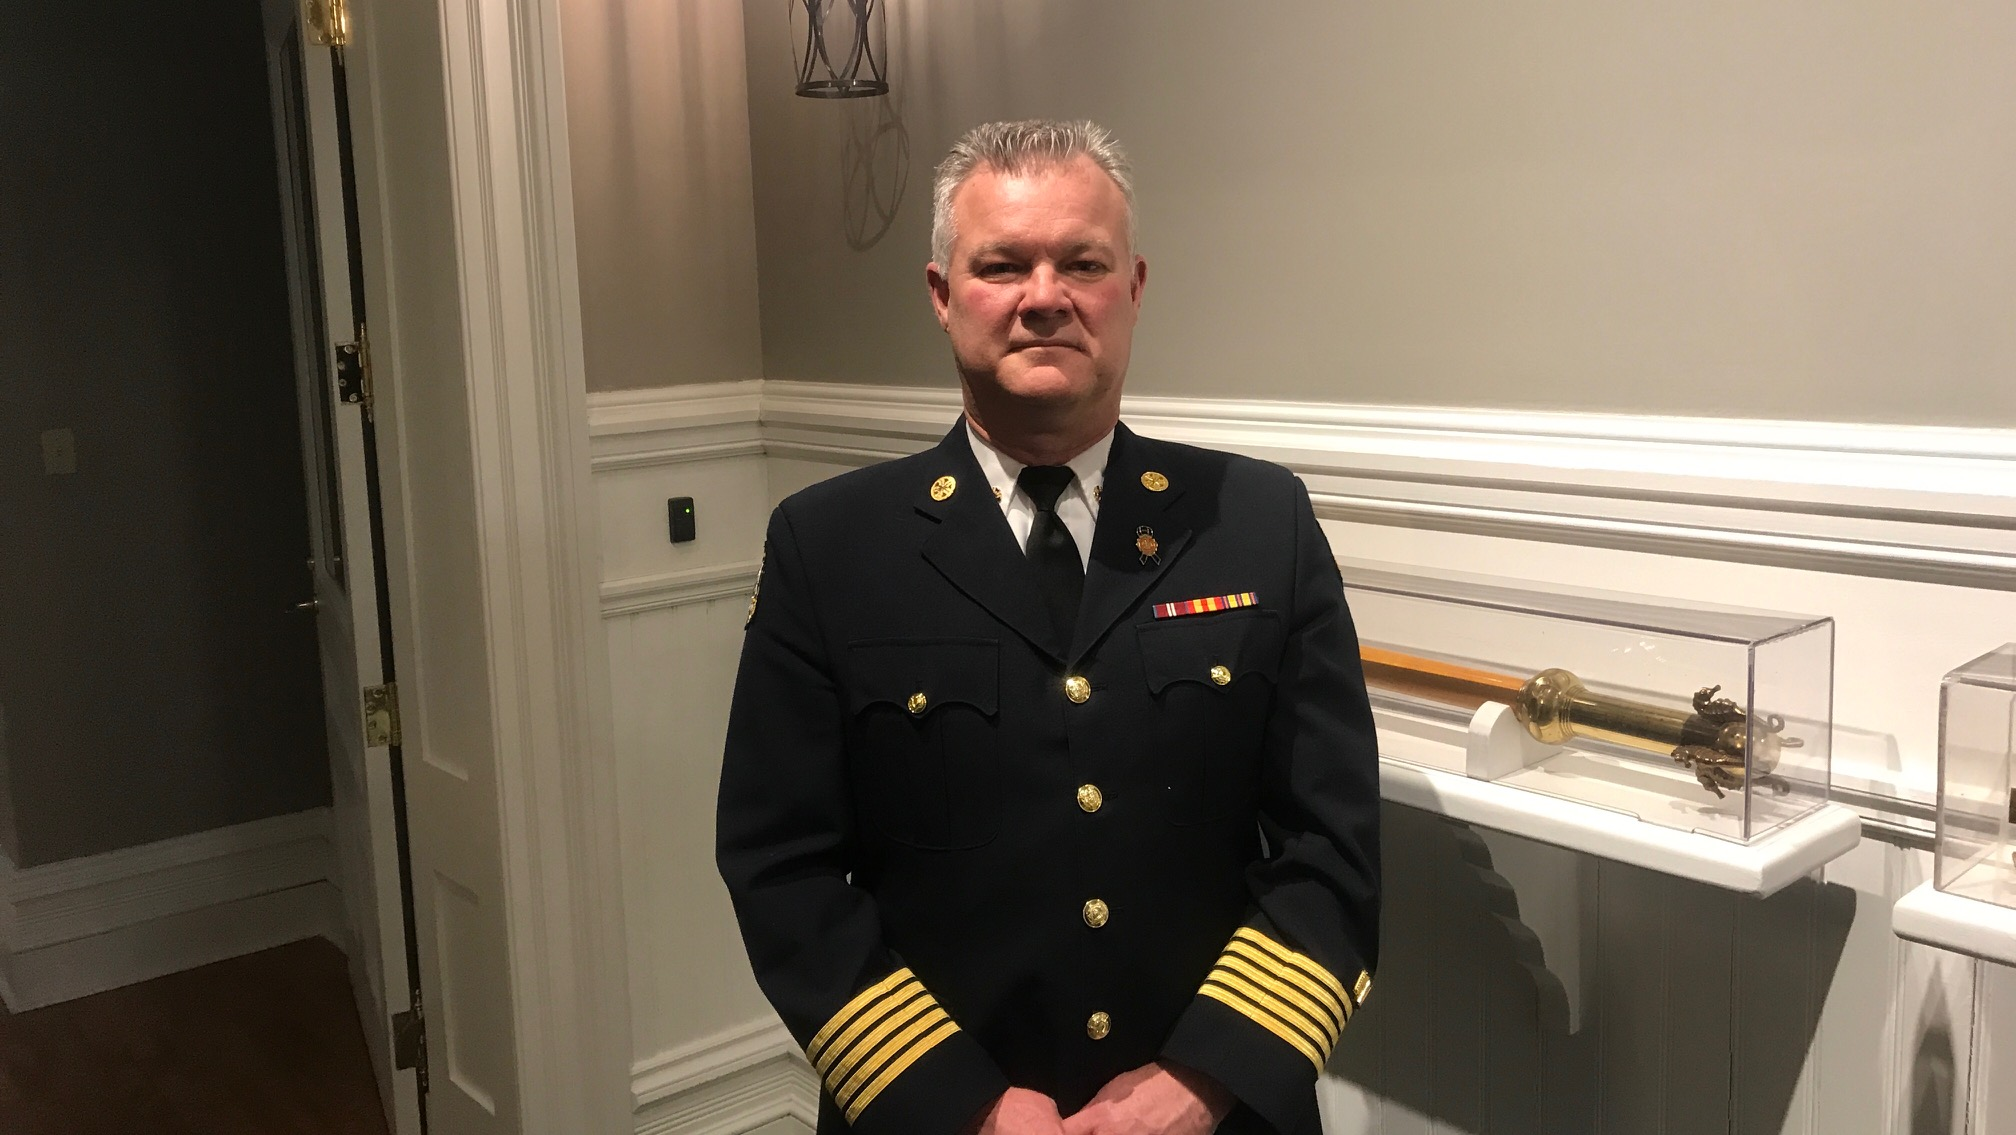 Halifax Regional fire and Emergency Chief Kenneth Stuebing after having his Budget proposal passed on Wednesday